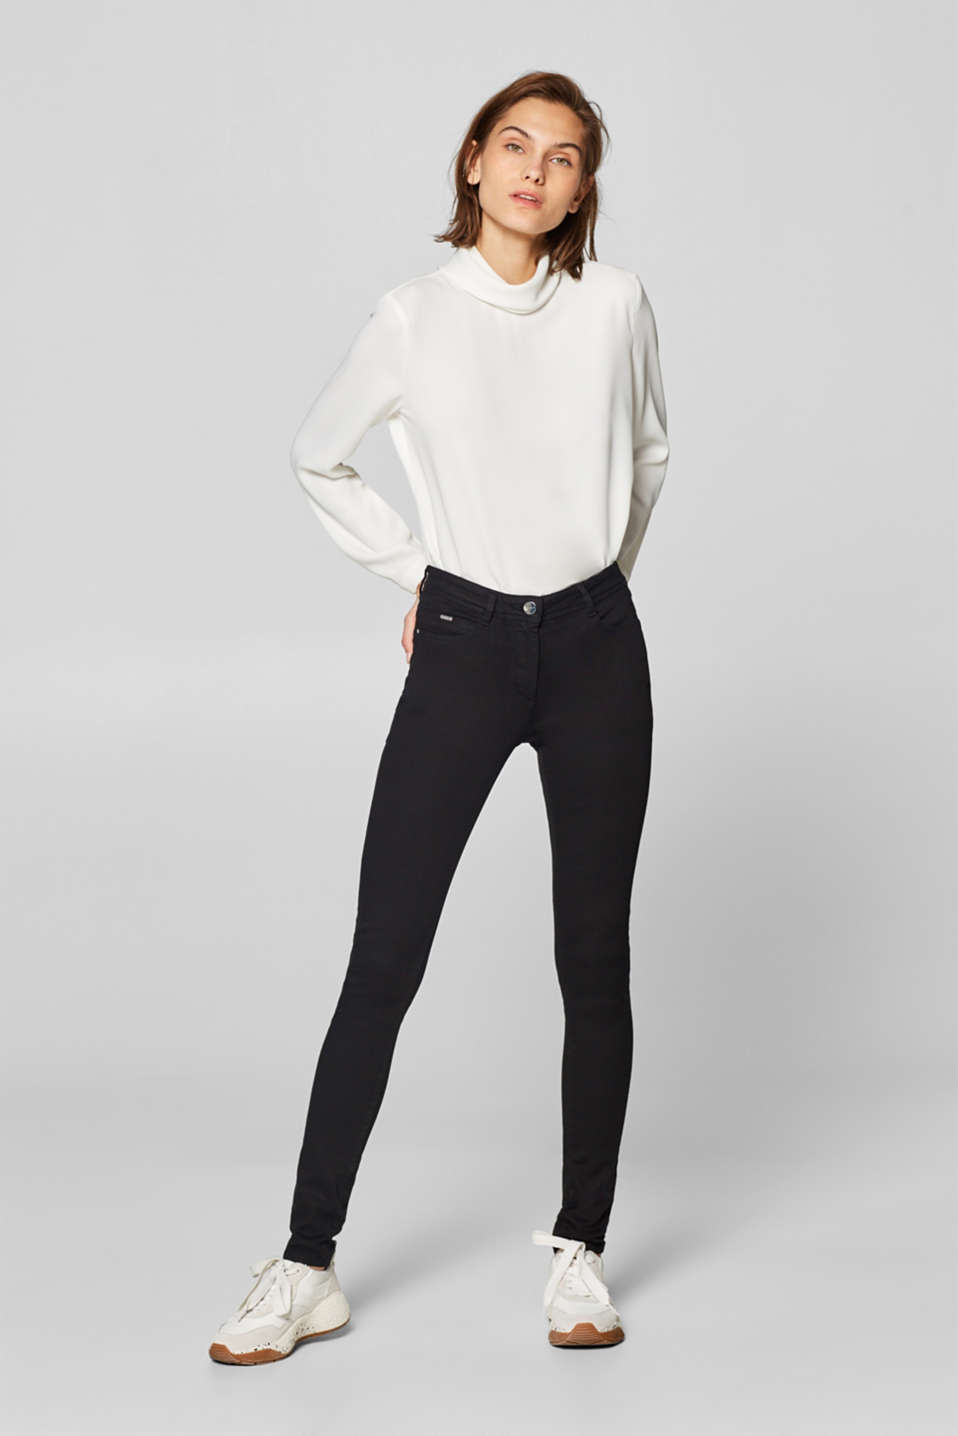 Esprit - Pantaloni modellanti con stretch 4-way